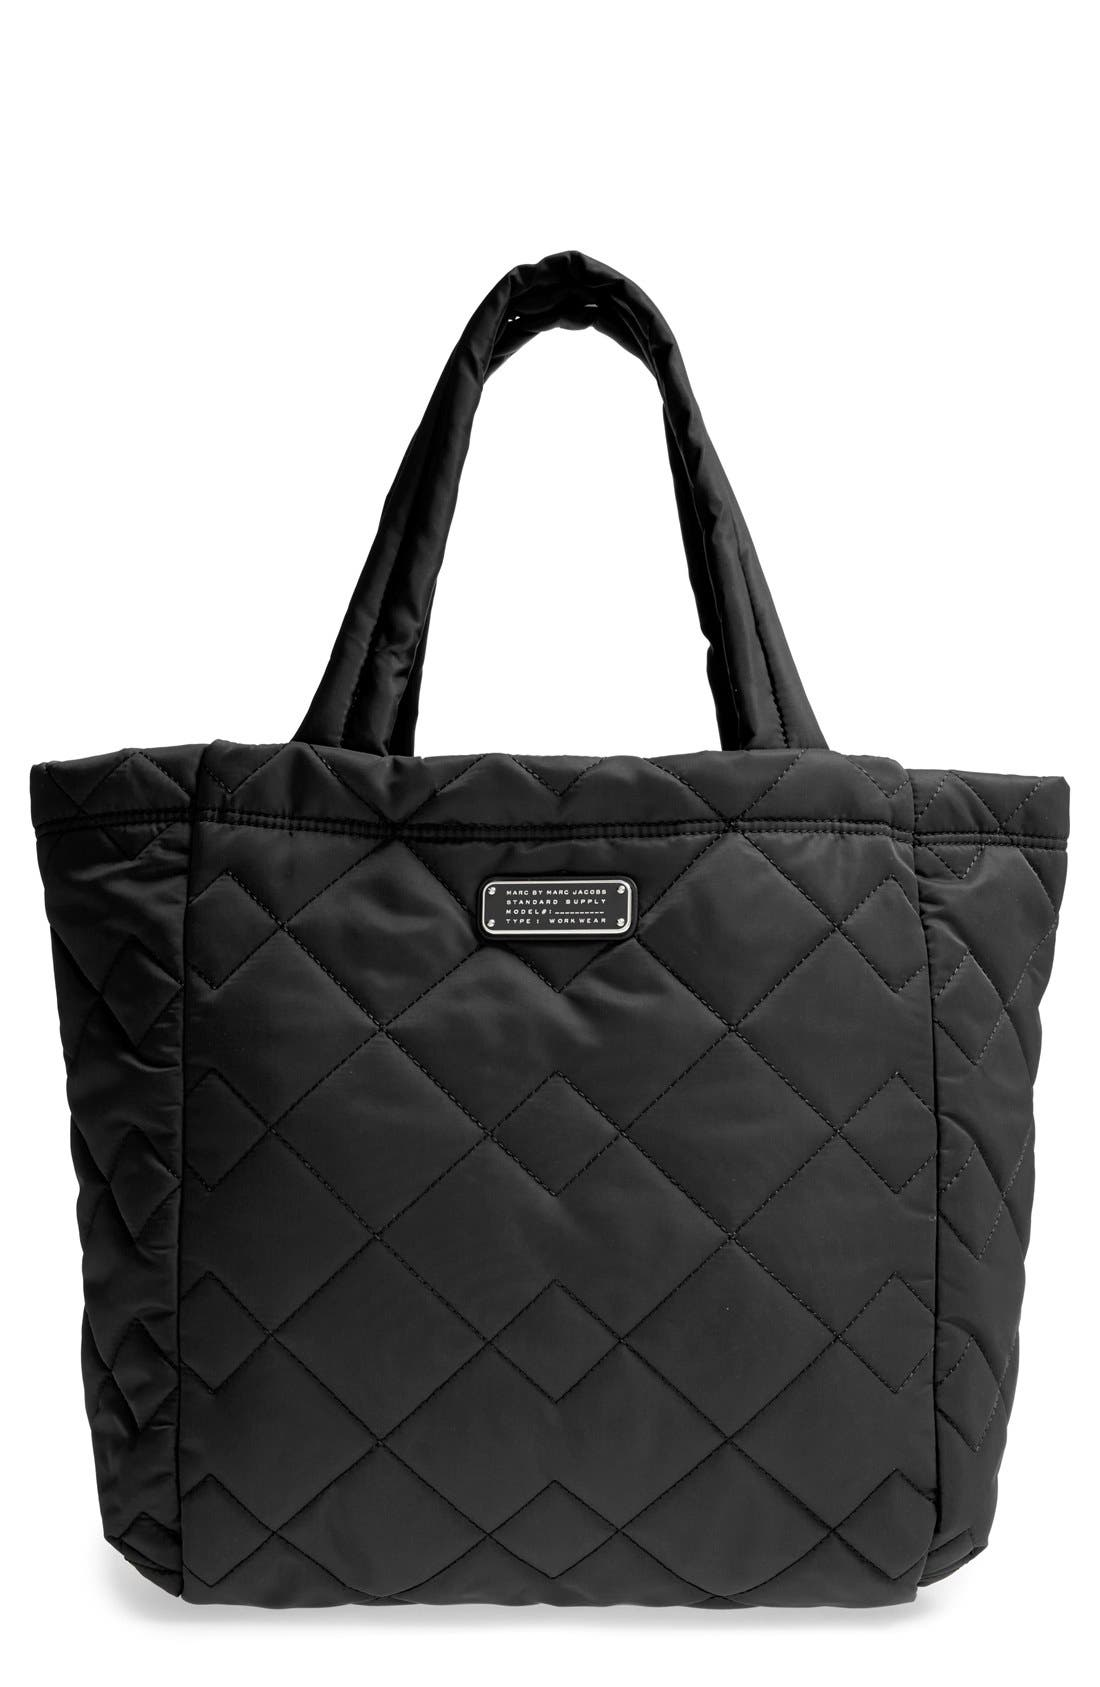 MARC BY MARC JACOBS 'Crosby' Quilted Nylon Tote, Main, color, 001